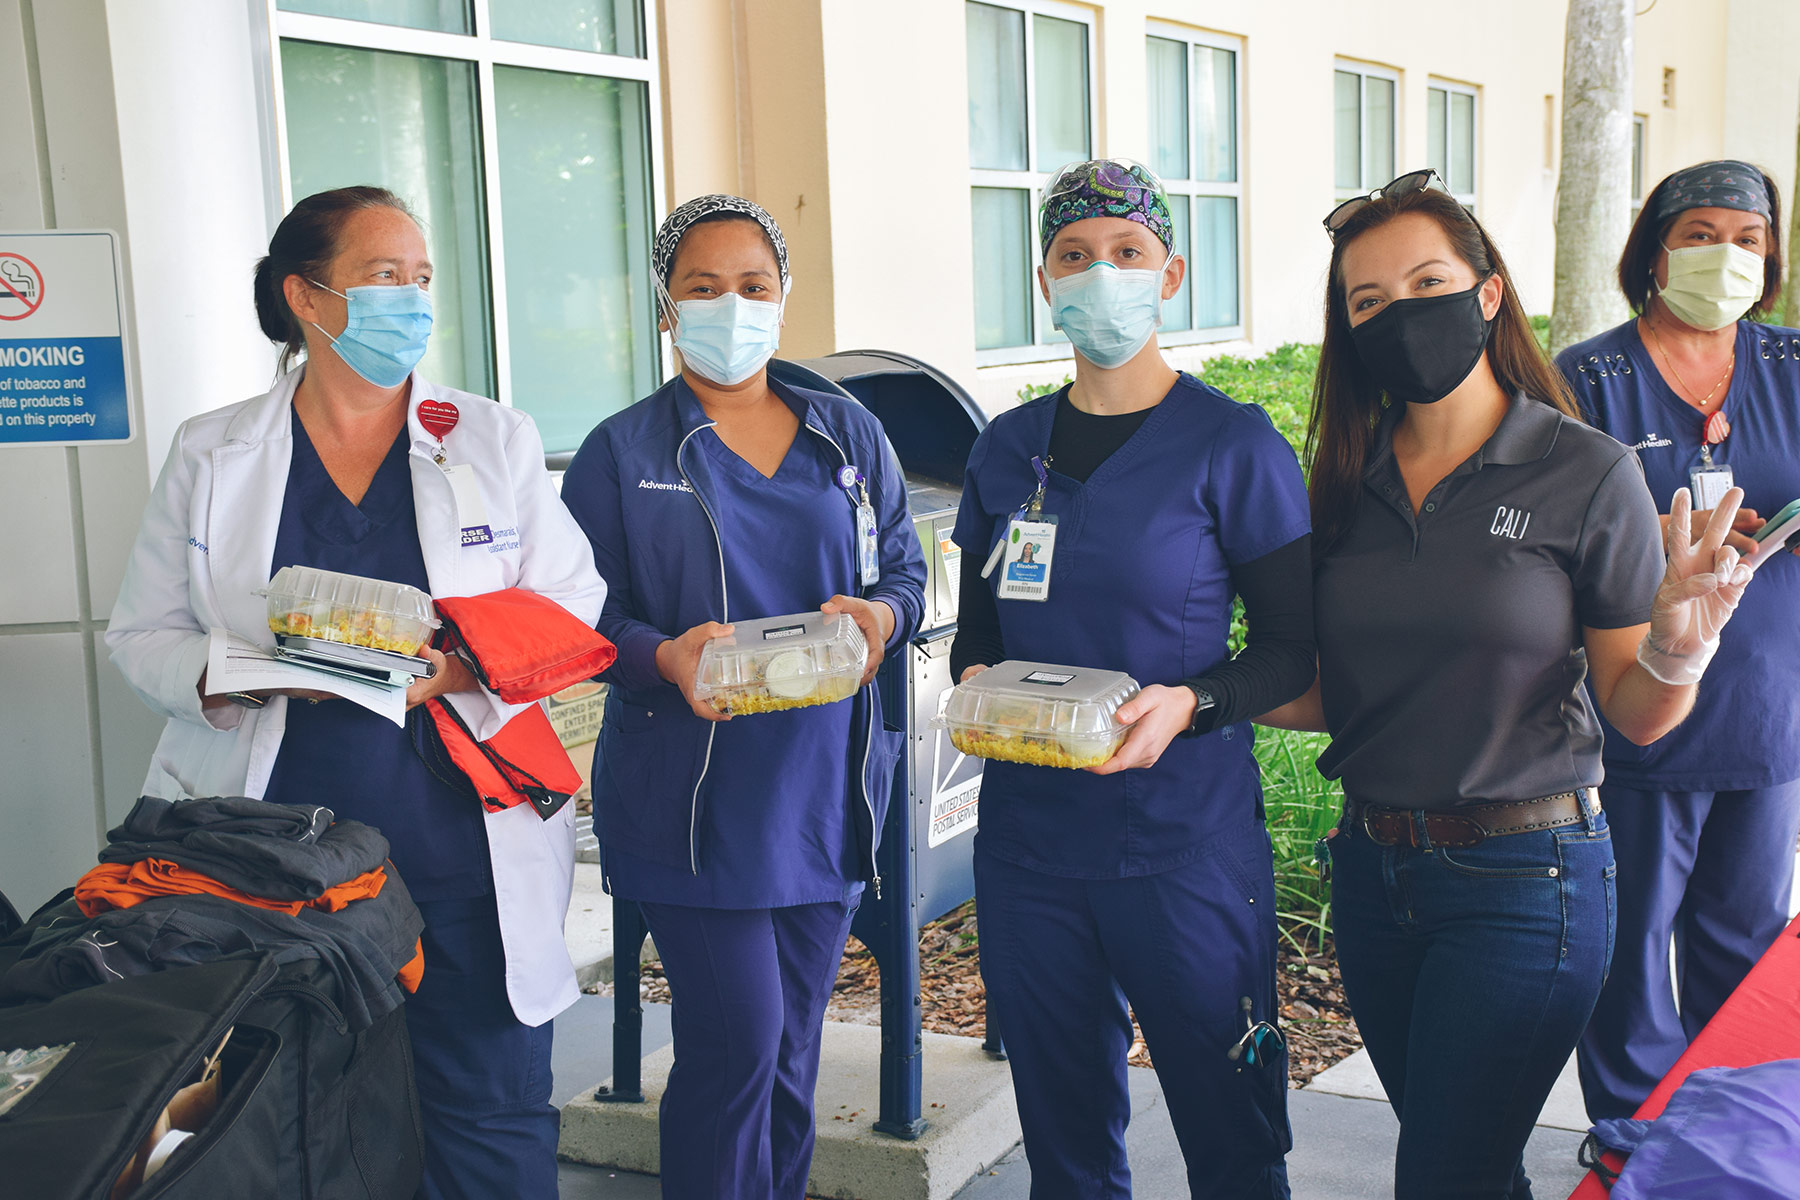 Medical professionals receiving take-out food from Cali